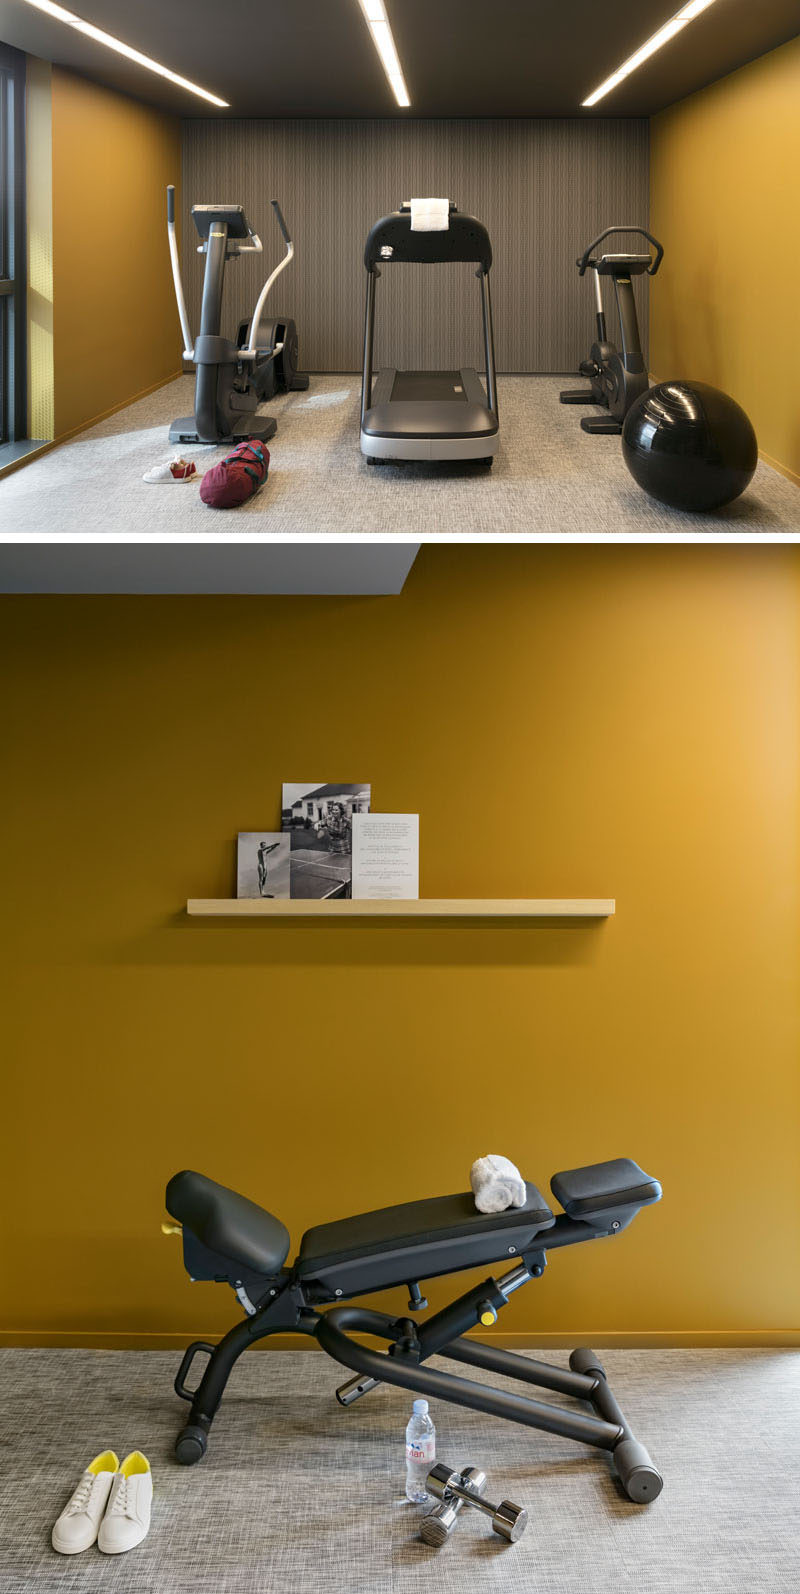 This modern hotel gym has a simple interior with bold colored walls and strips of lighting in the ceiling.